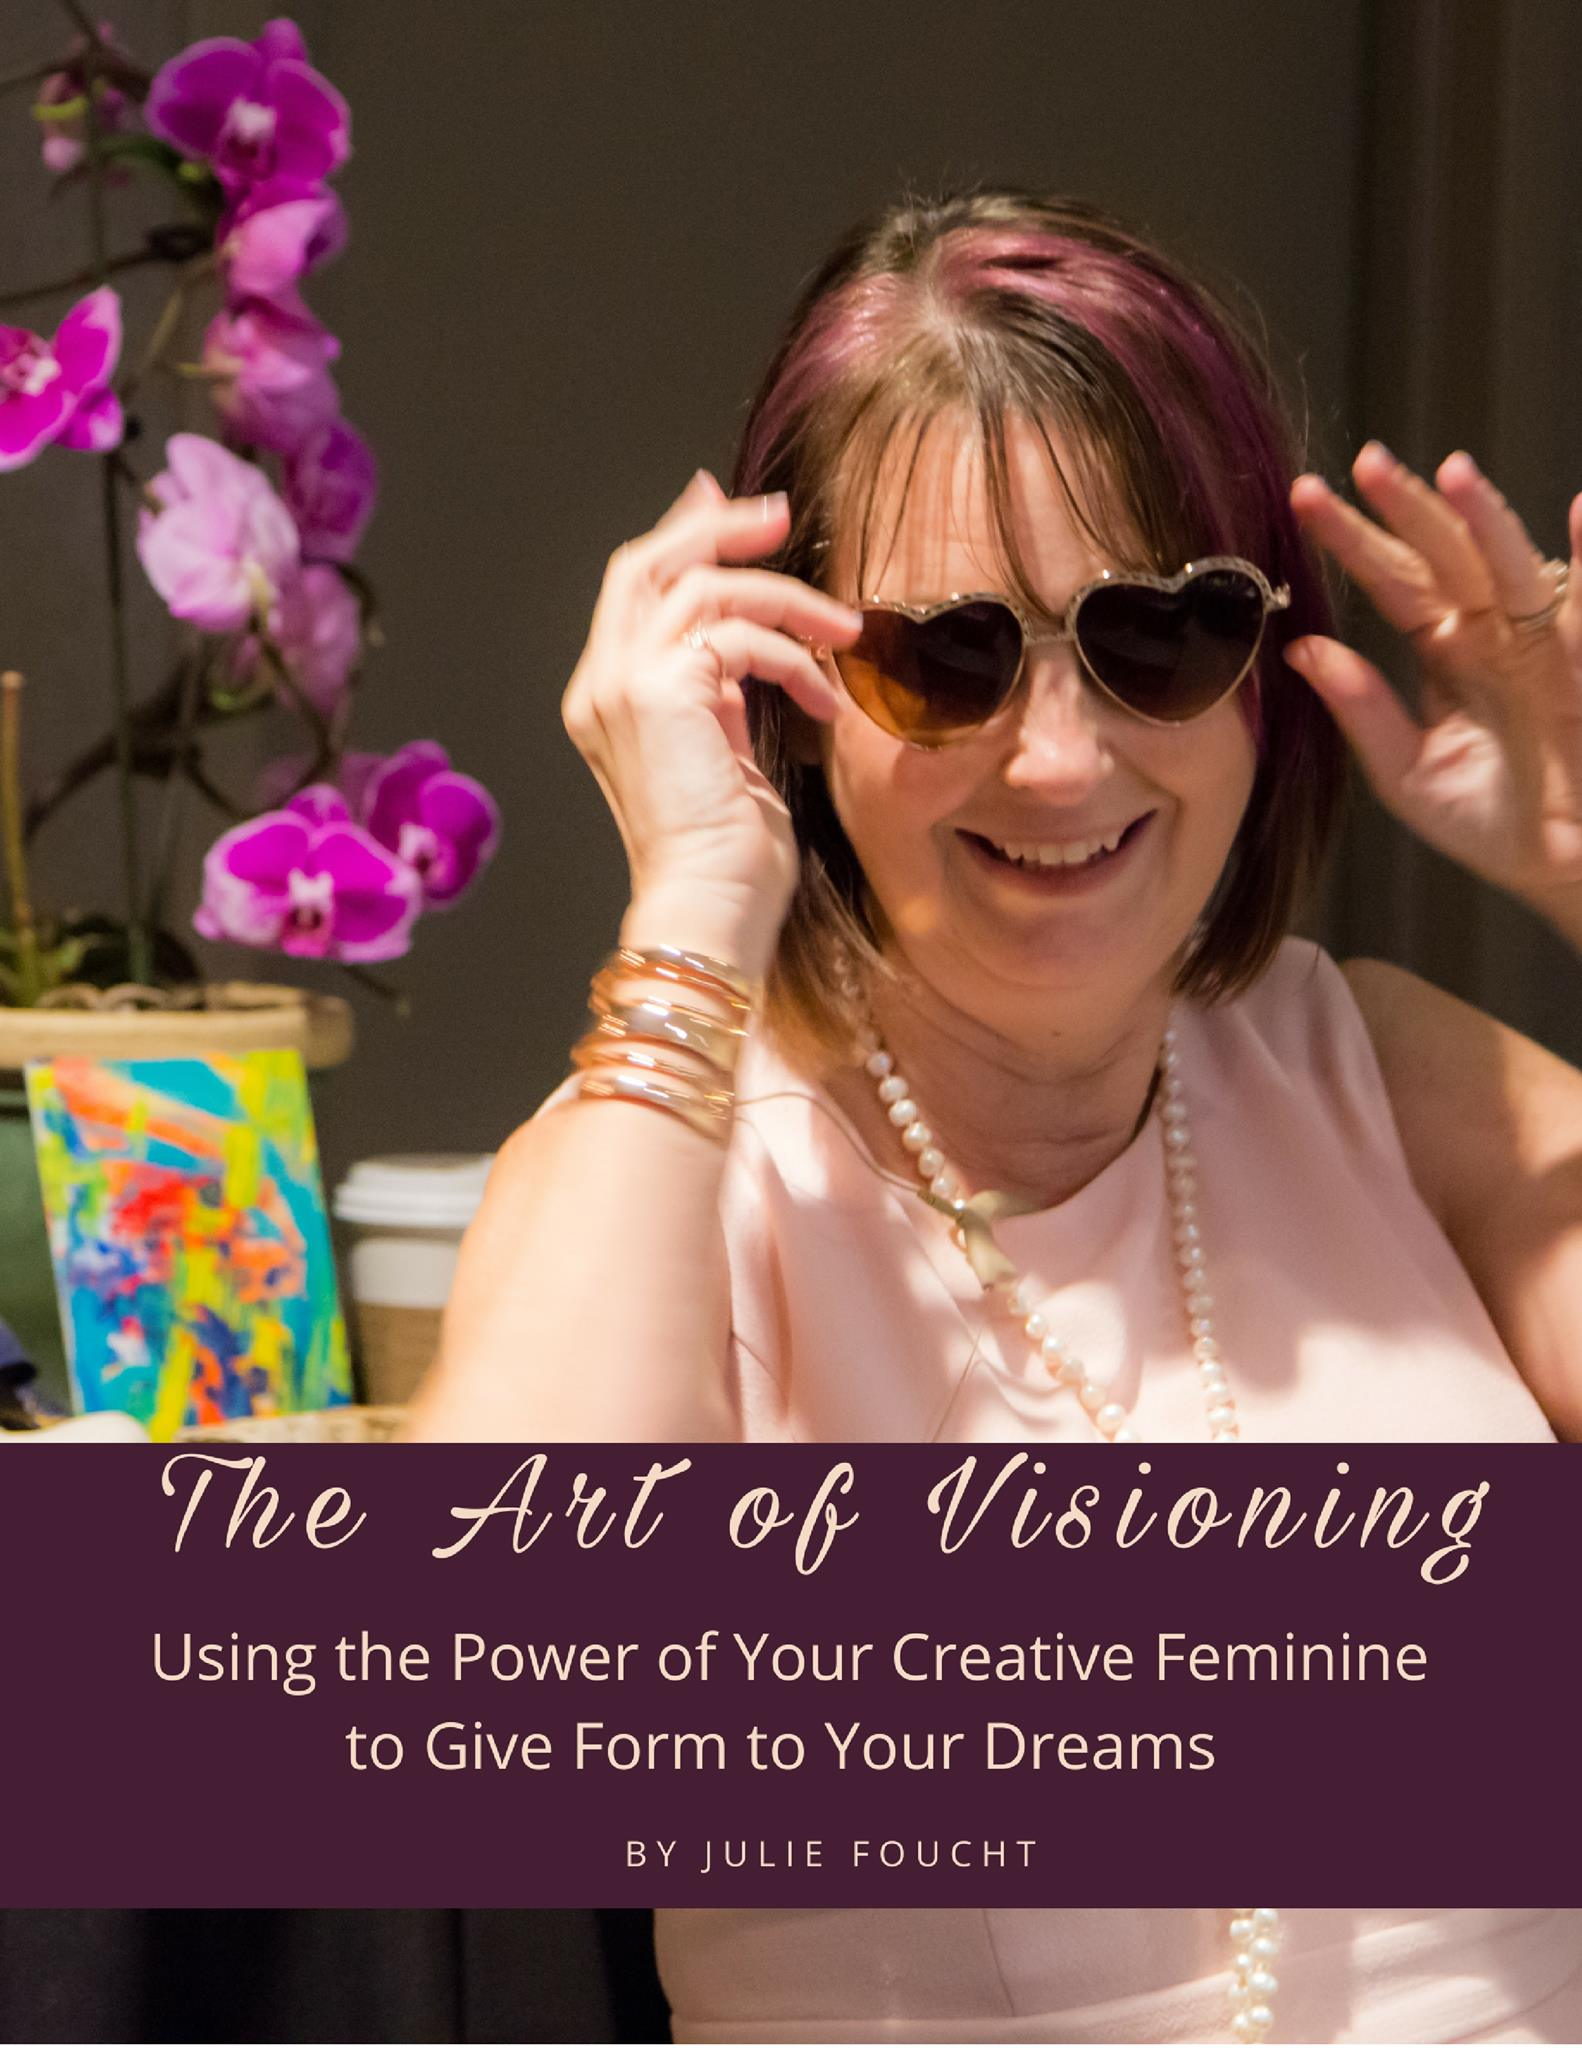 The Art of Feminine Marketing Guide